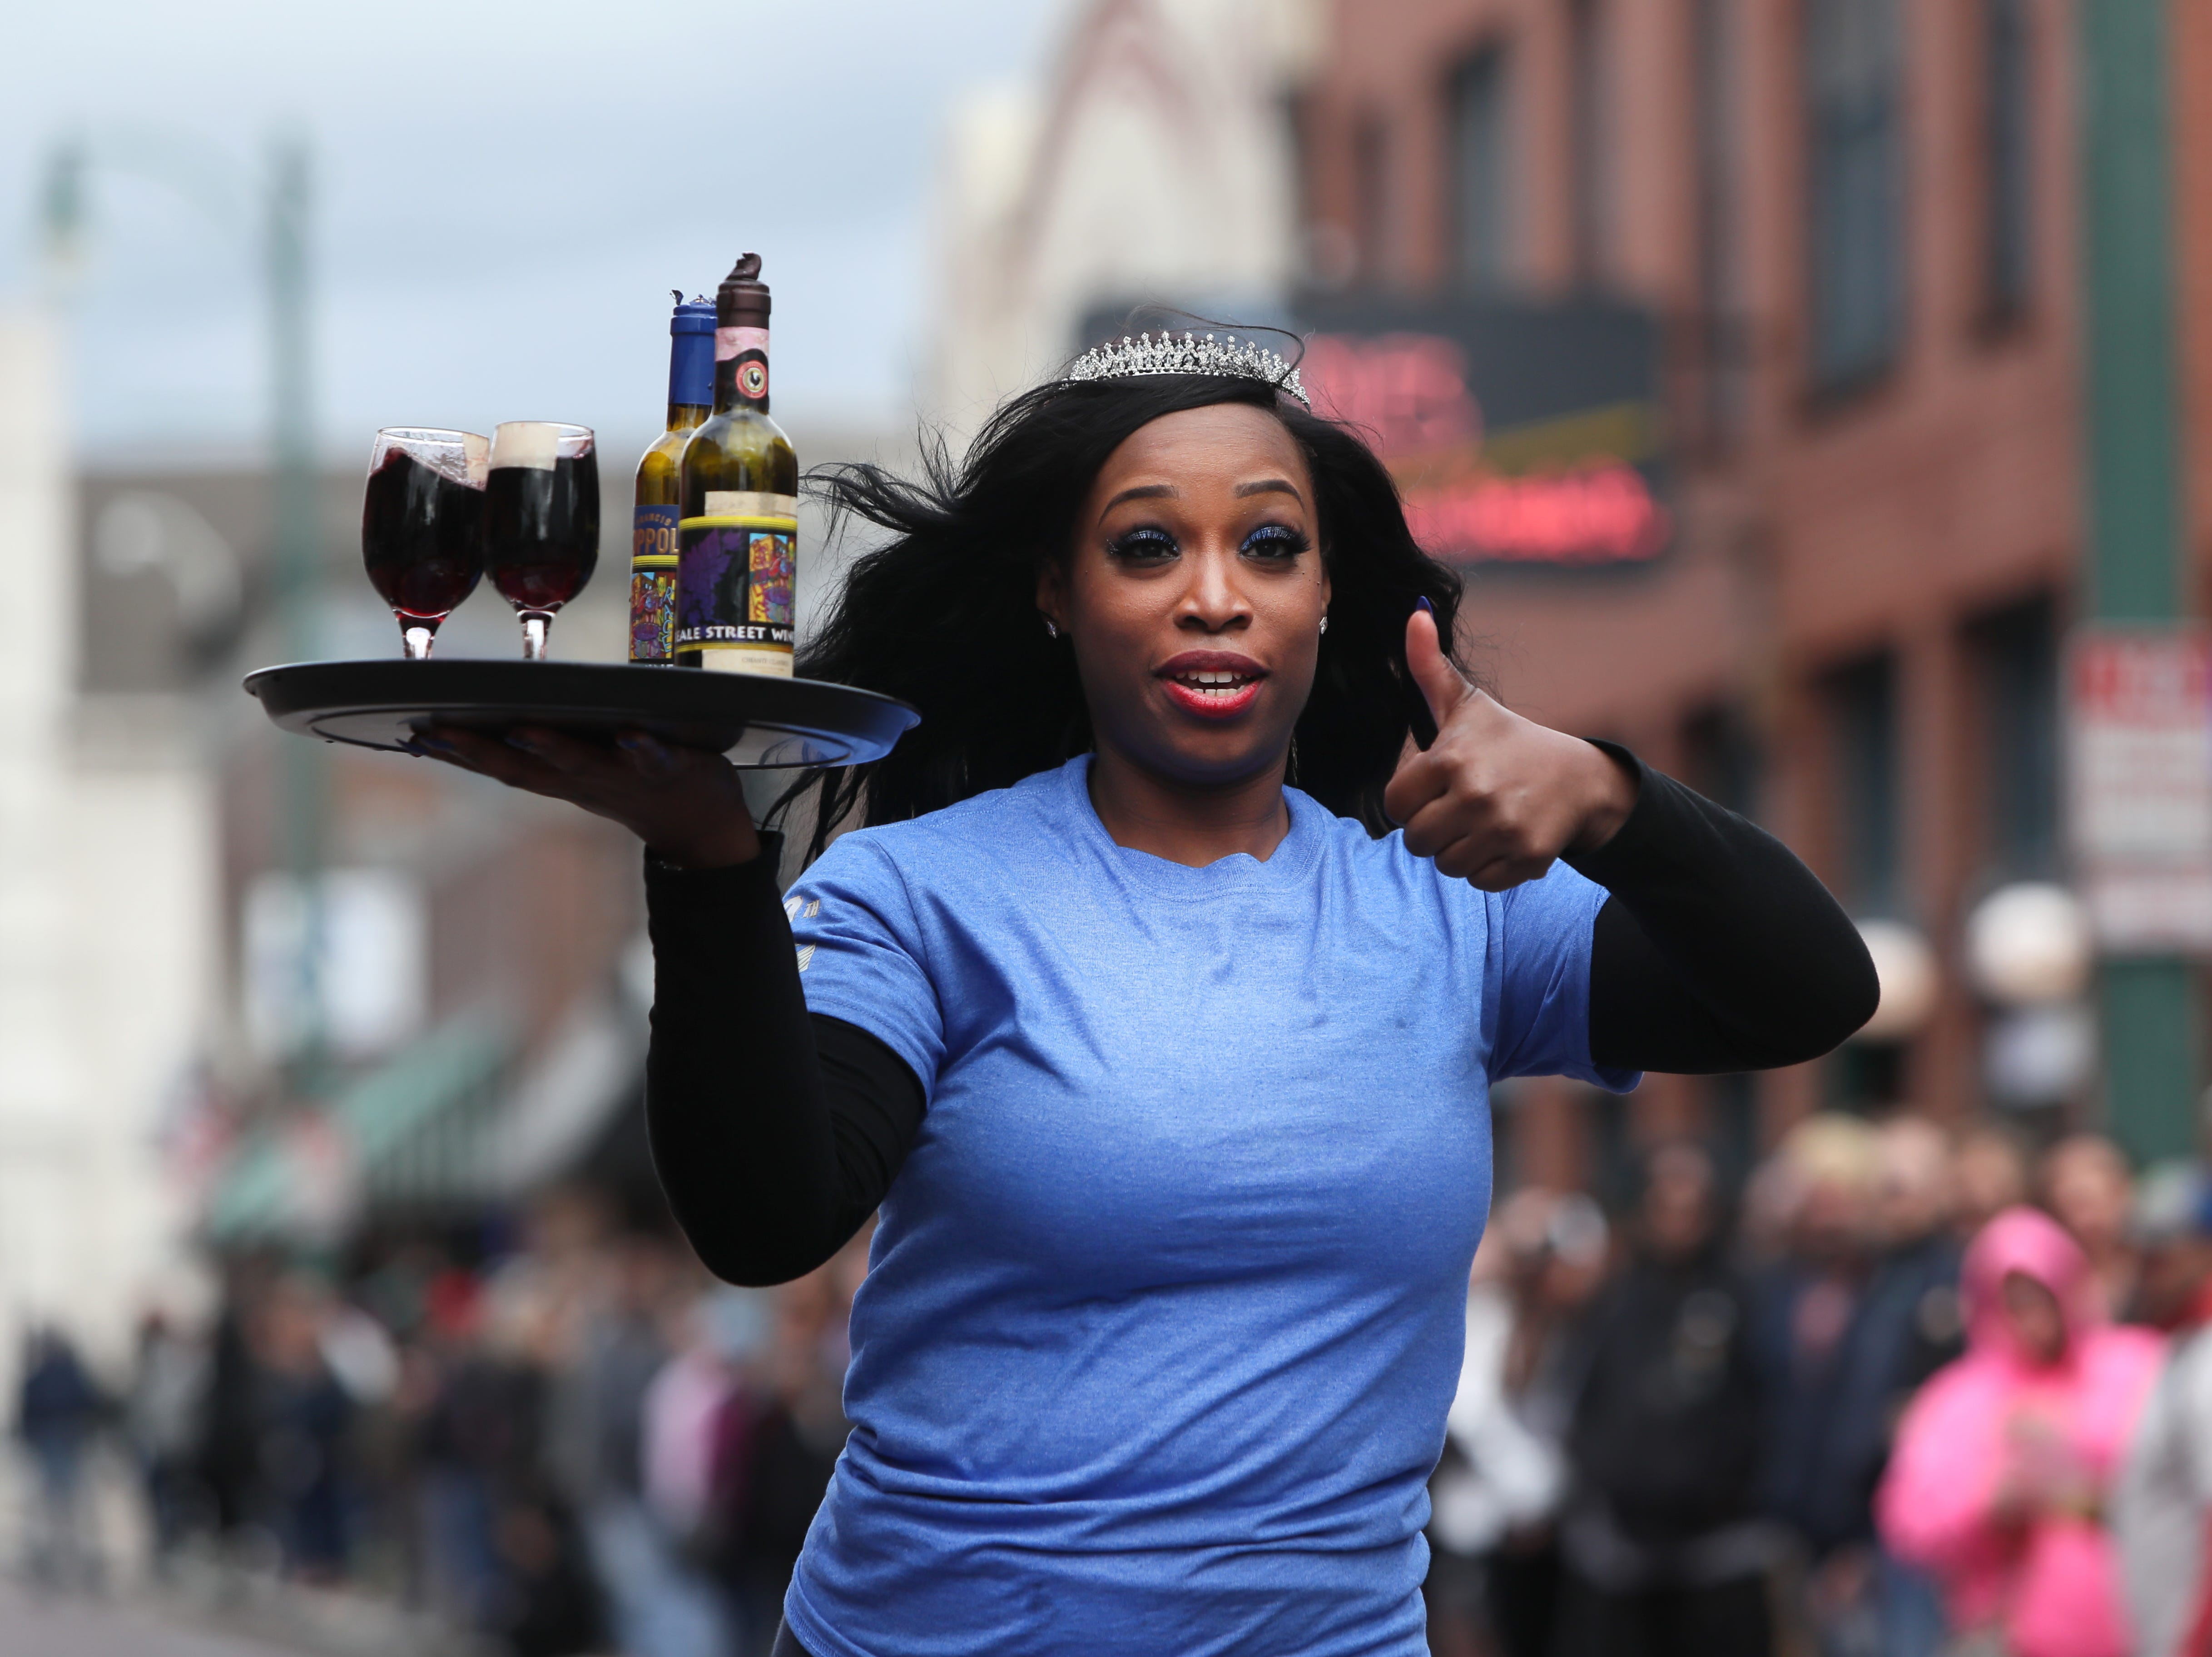 Sherita Thomas speeds down the street with a tray full of bottles and glassware during the Beale Street Wine Race downtown on Sunday, April 14, 2019.